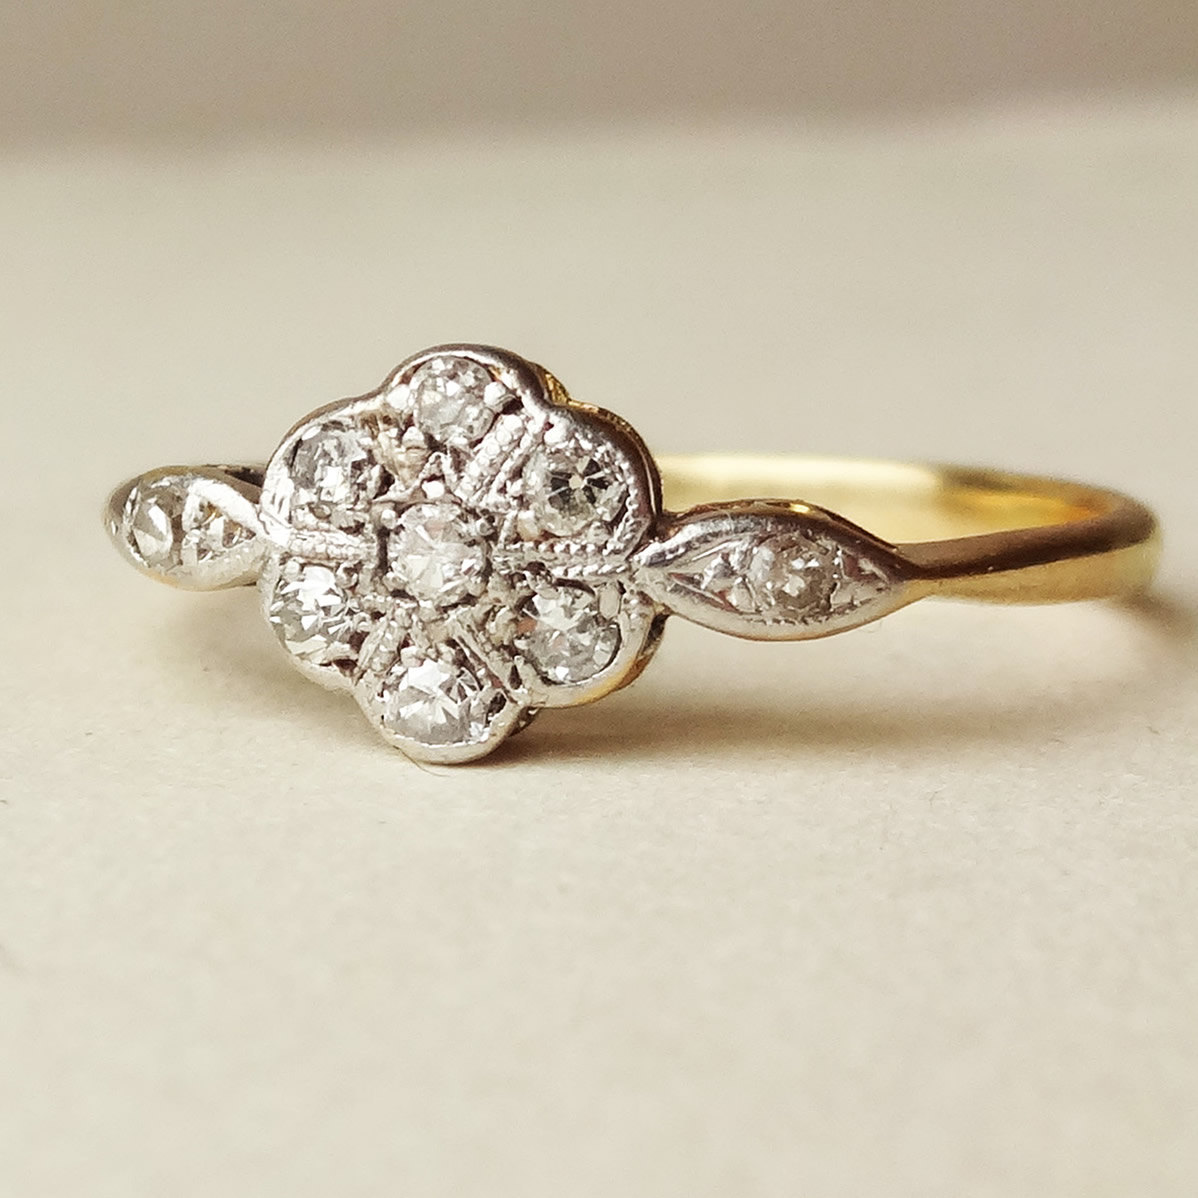 Etsy Engagement Rings Uk: vintage etsy engagement rings gold